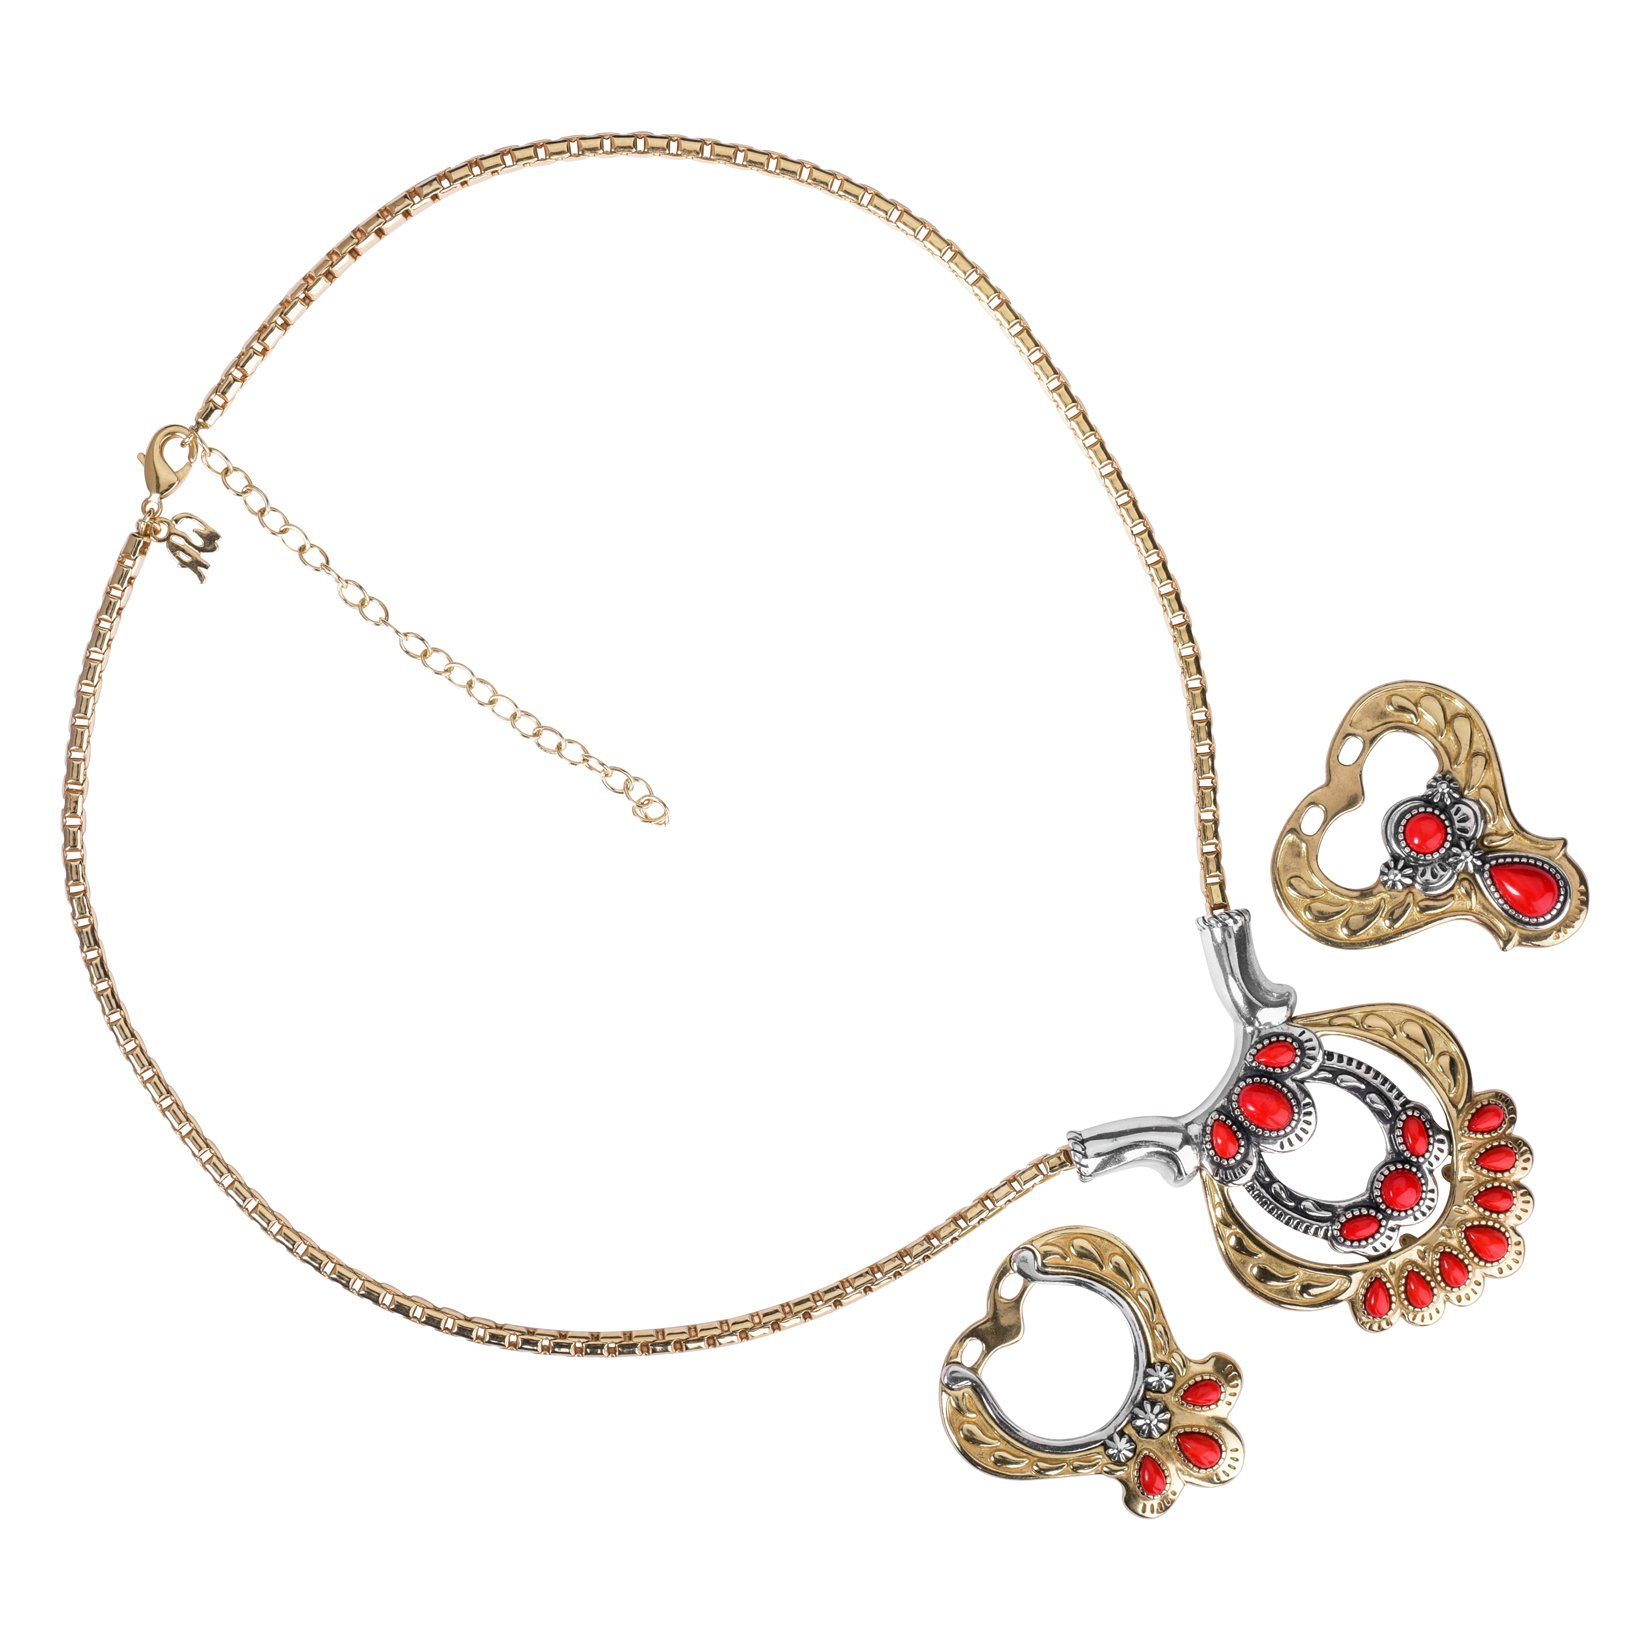 Sterling Silver, Brass and Red Coral Necklace with Removable Stations by American West (Image #4)